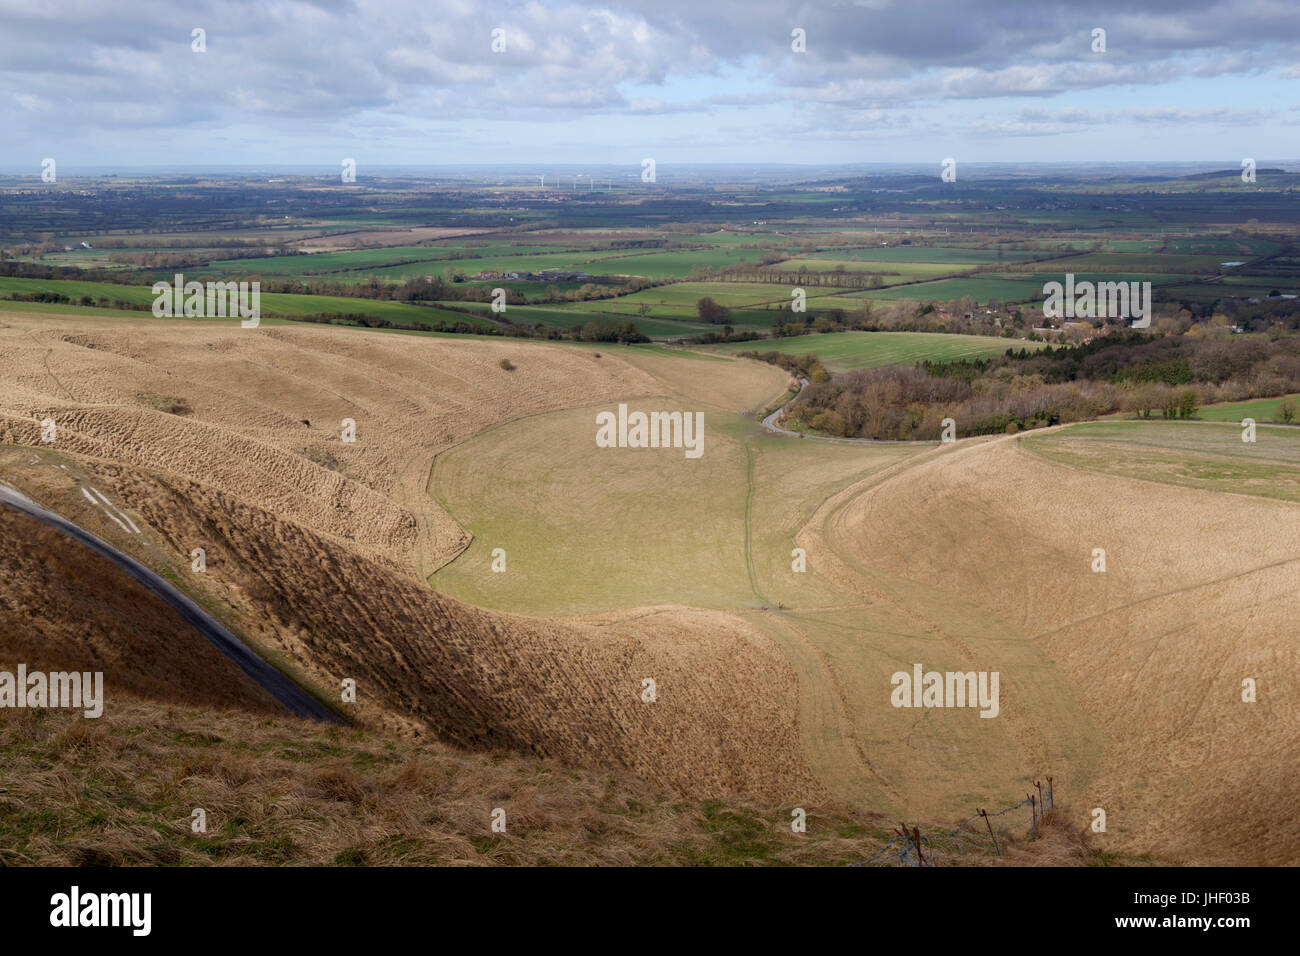 The Manger from Uffington Castle and Oxfordshire countryside, near Wantage, Oxfordshire, England, United Kingdom, - Stock Image